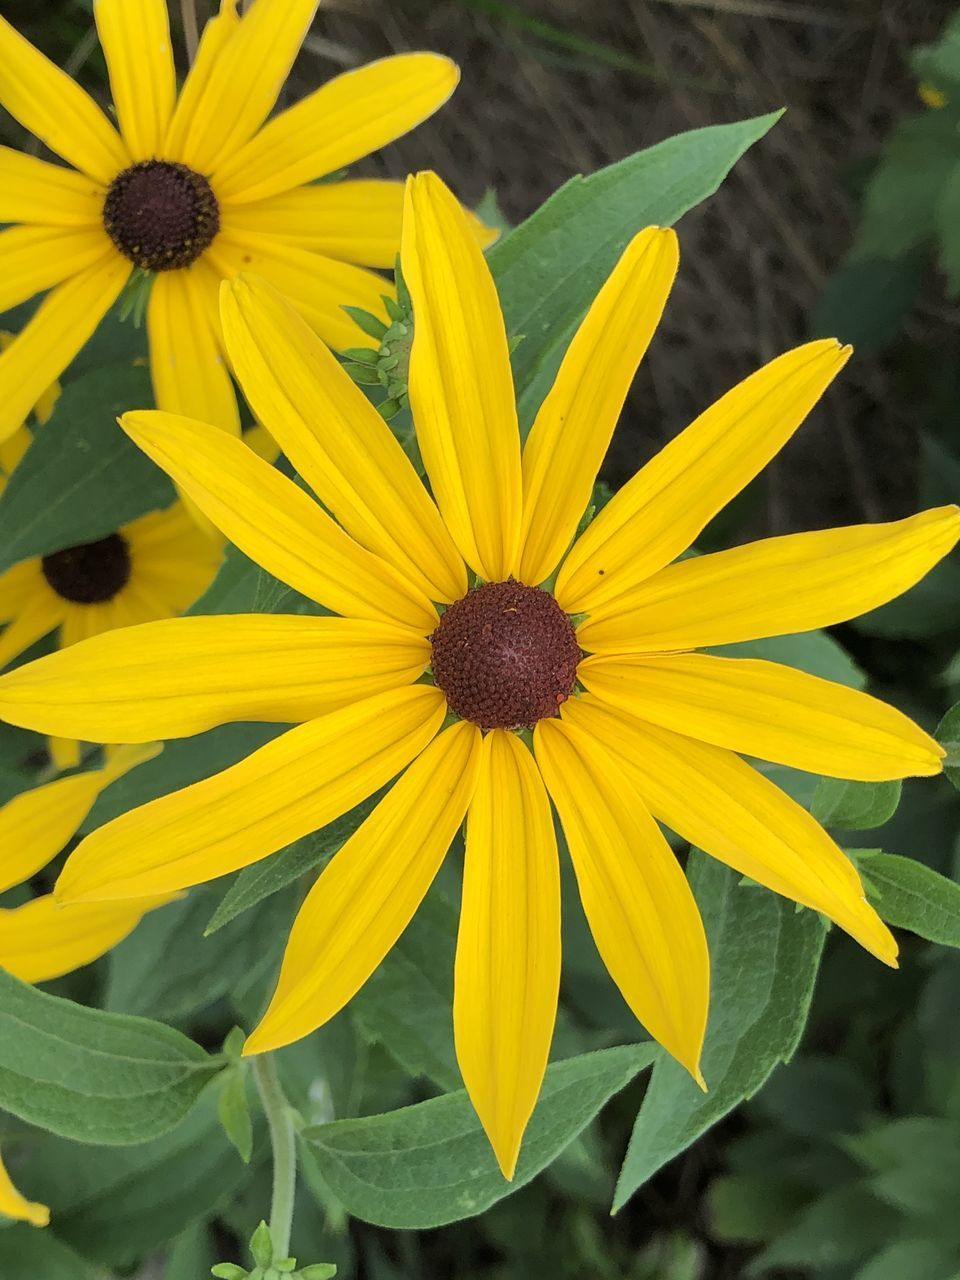 CLOSE UP OF YELLOW BLACK-EYED AND PURPLE FLOWER